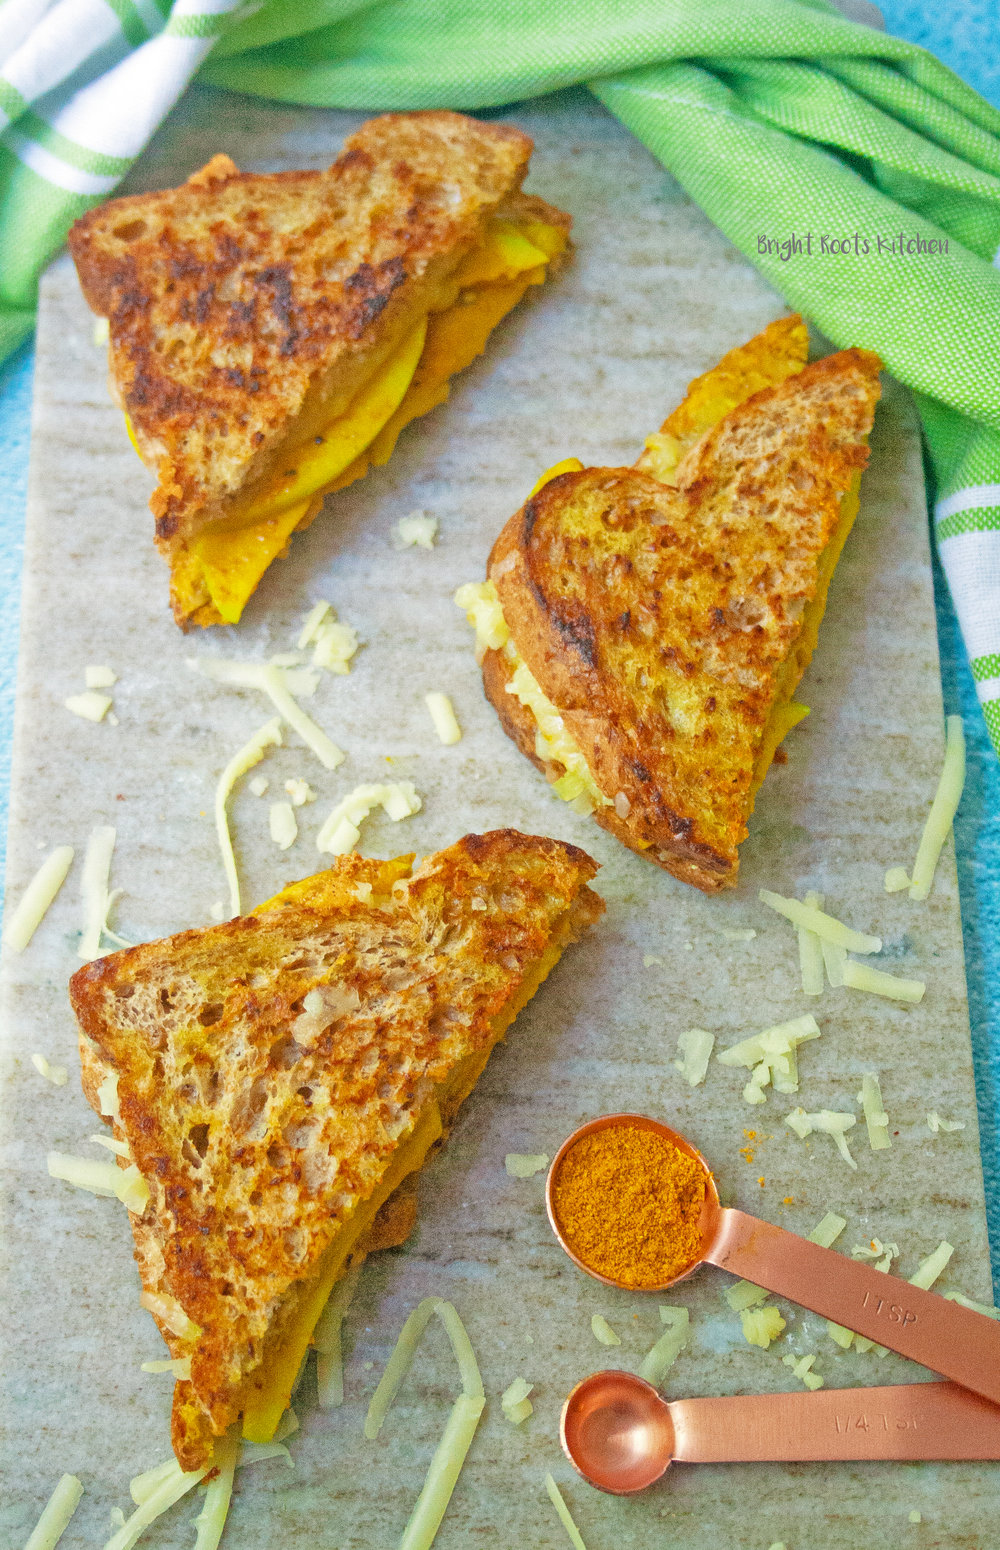 Curried-Apple-Grilled-Cheese-4.jpg